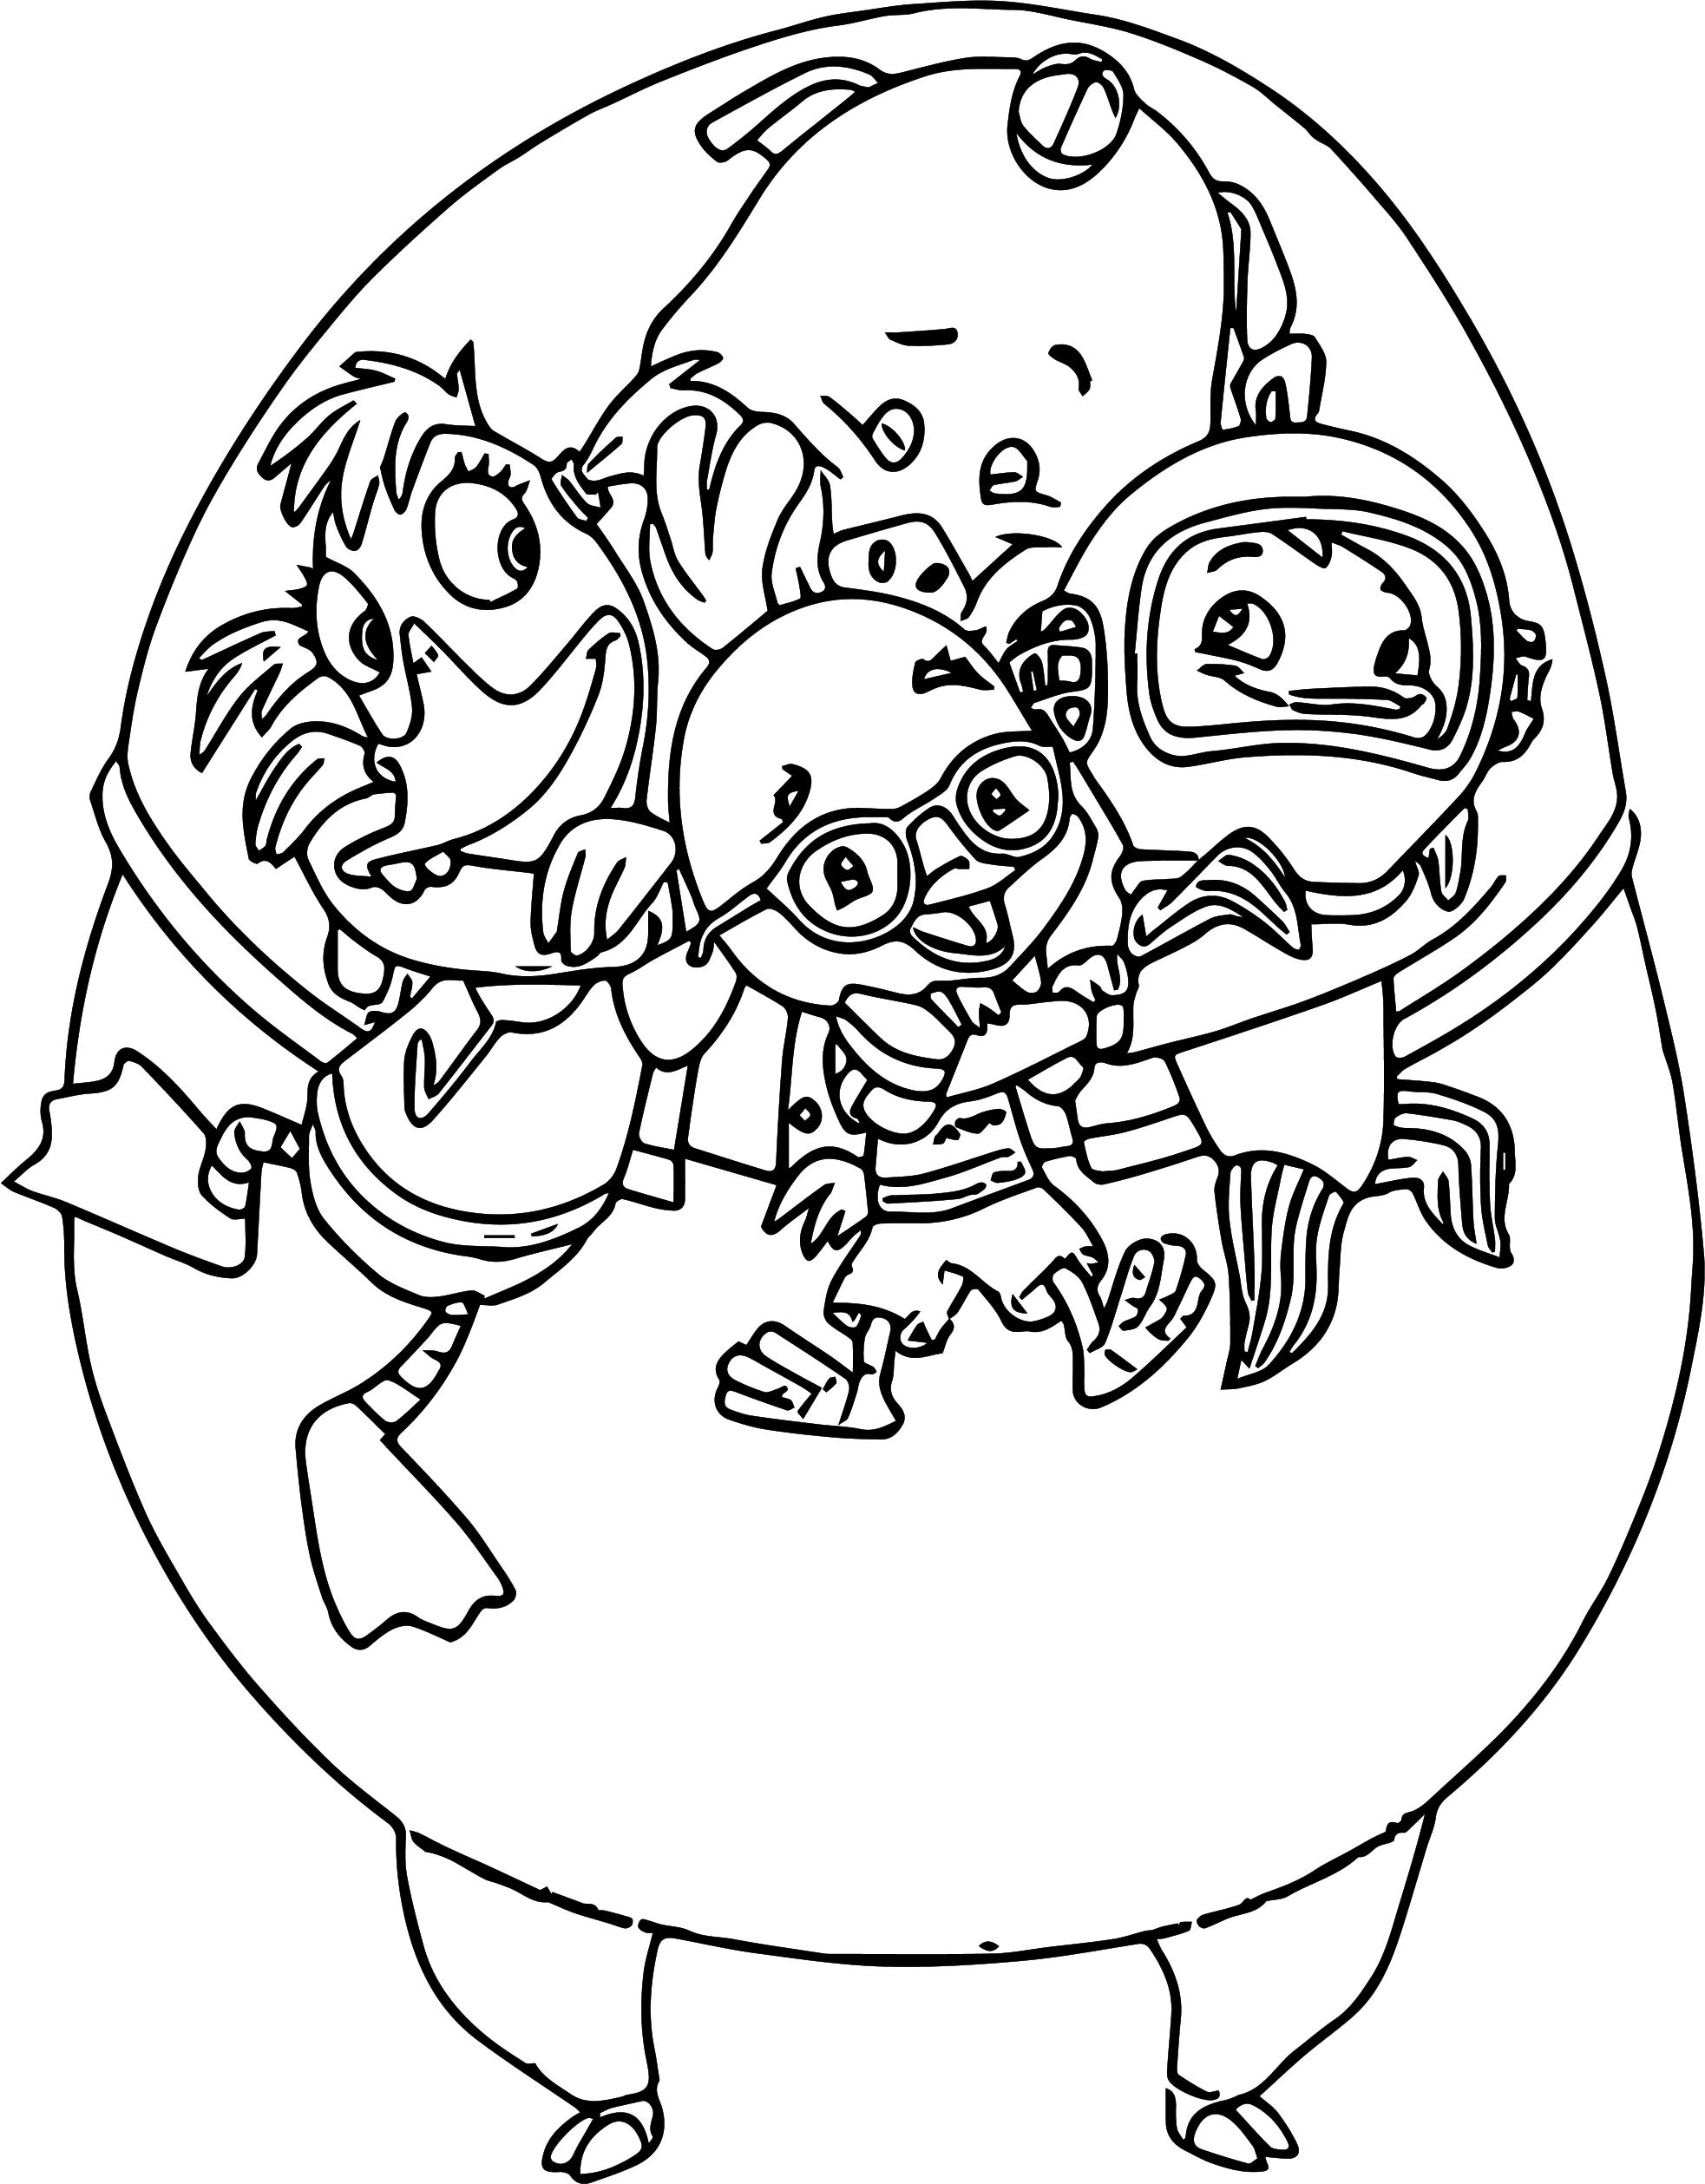 Buck Cluck Little Chick And Friends Love Coloring Page